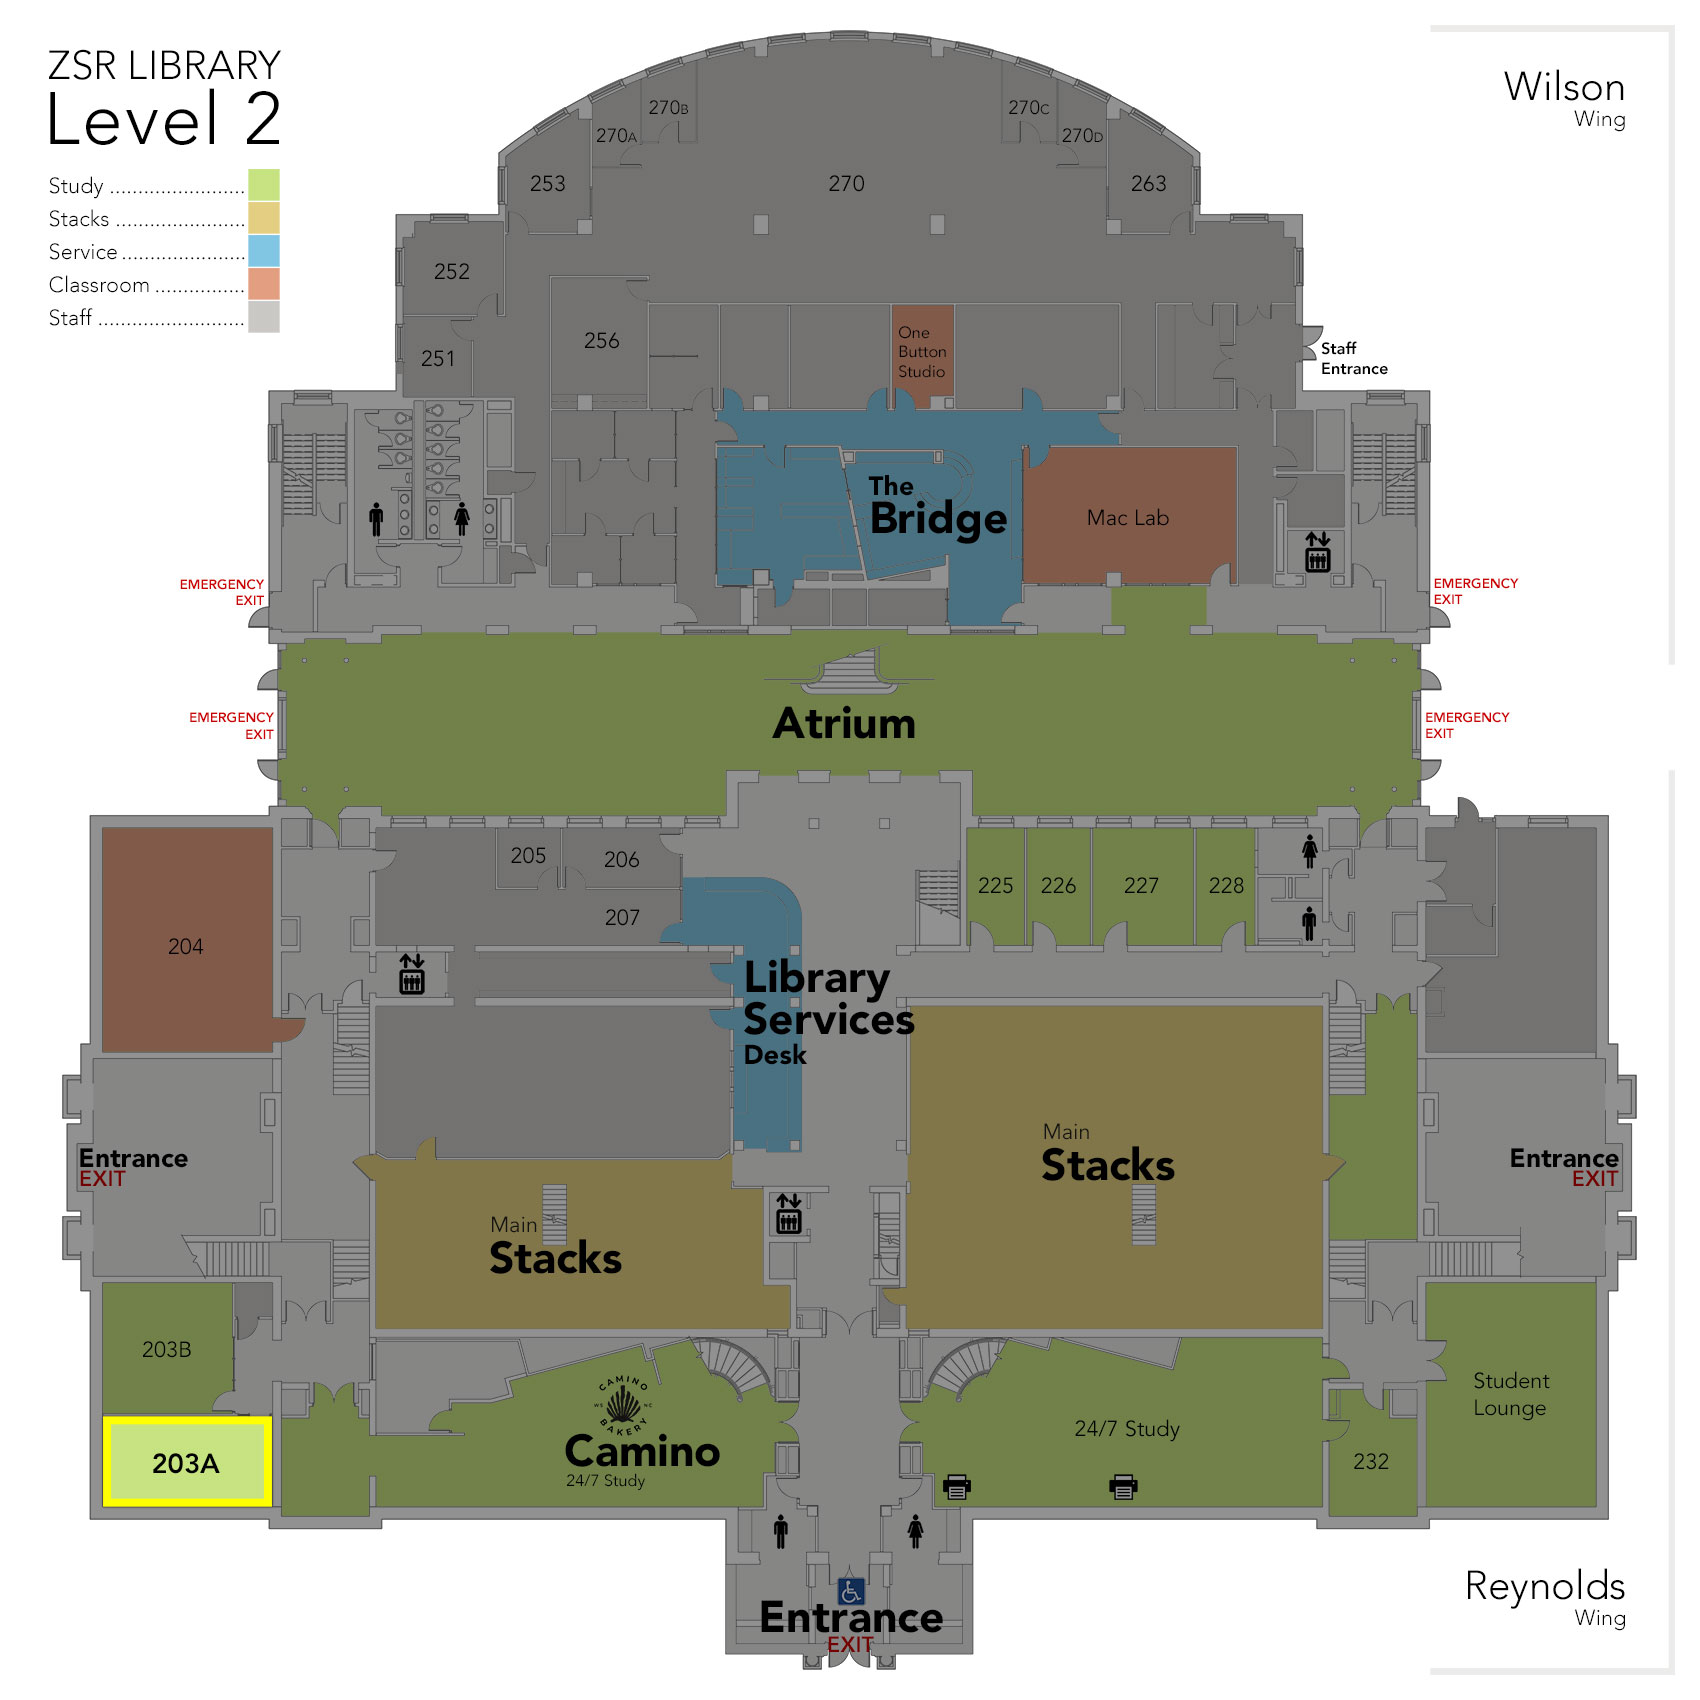 Level 2 Study Room 203A map